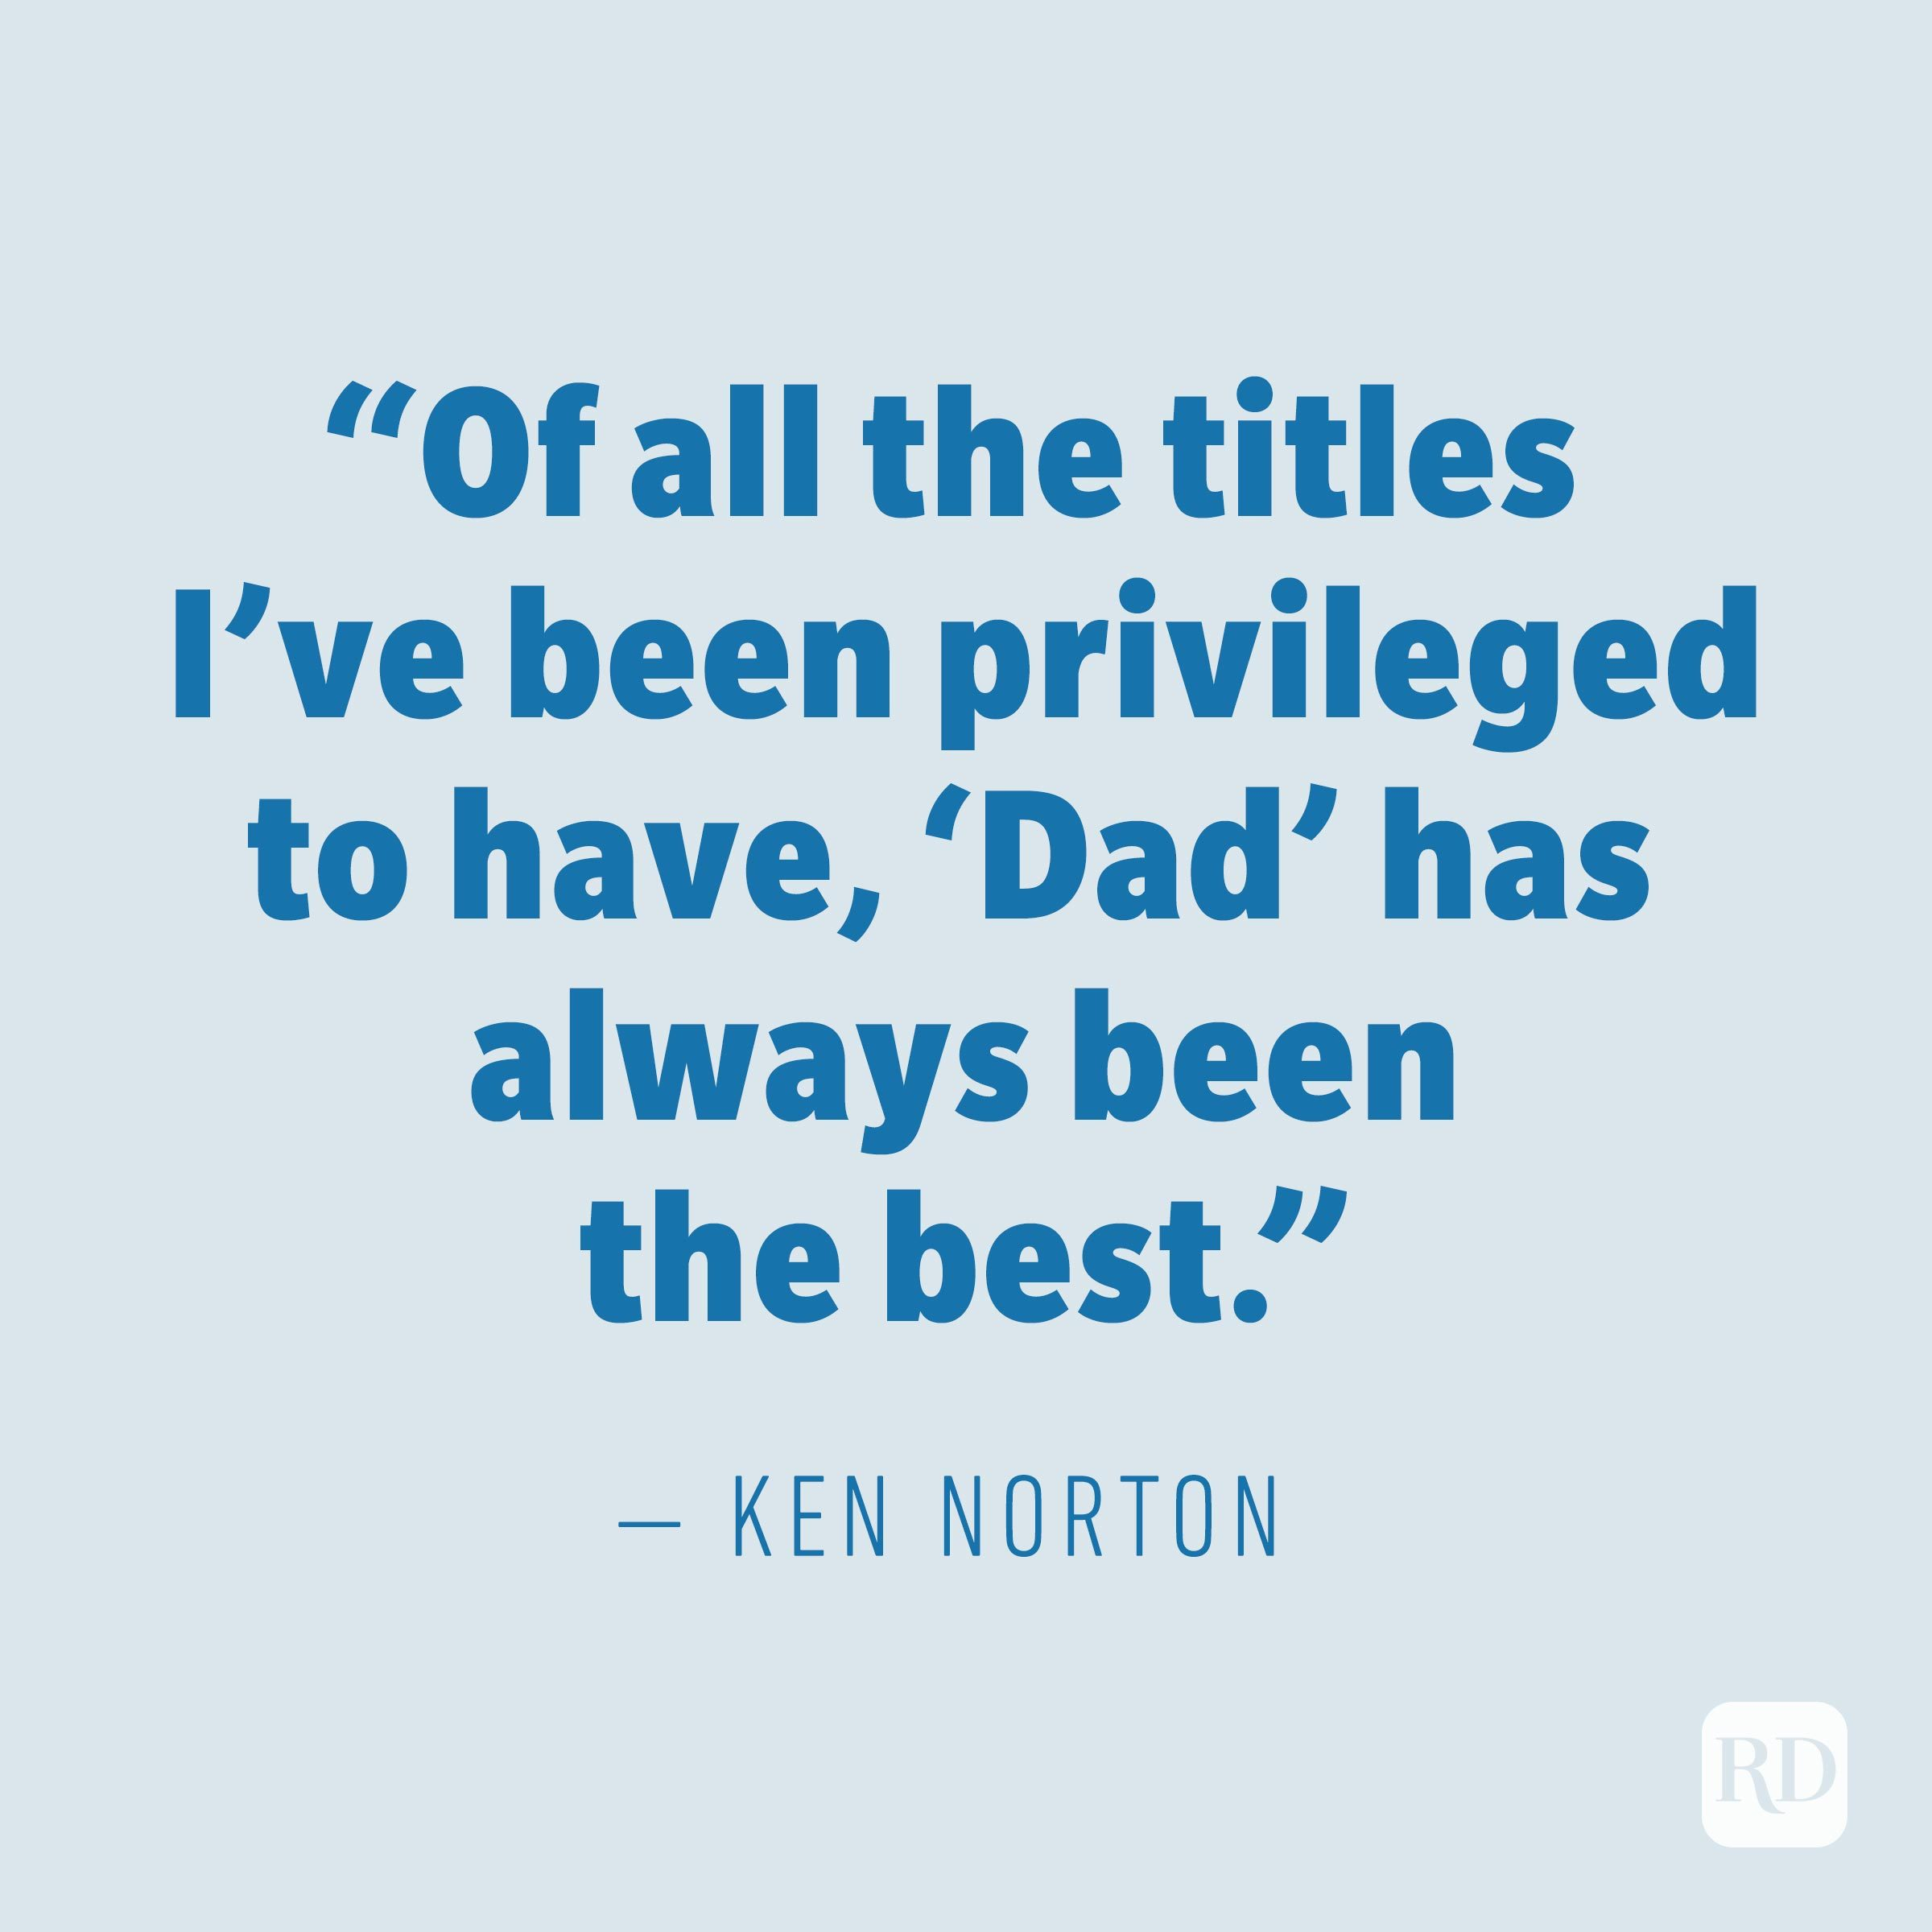 """Of all the titles I've been privileged to have, 'Dad' has always been the best."" —KEN NORTON"